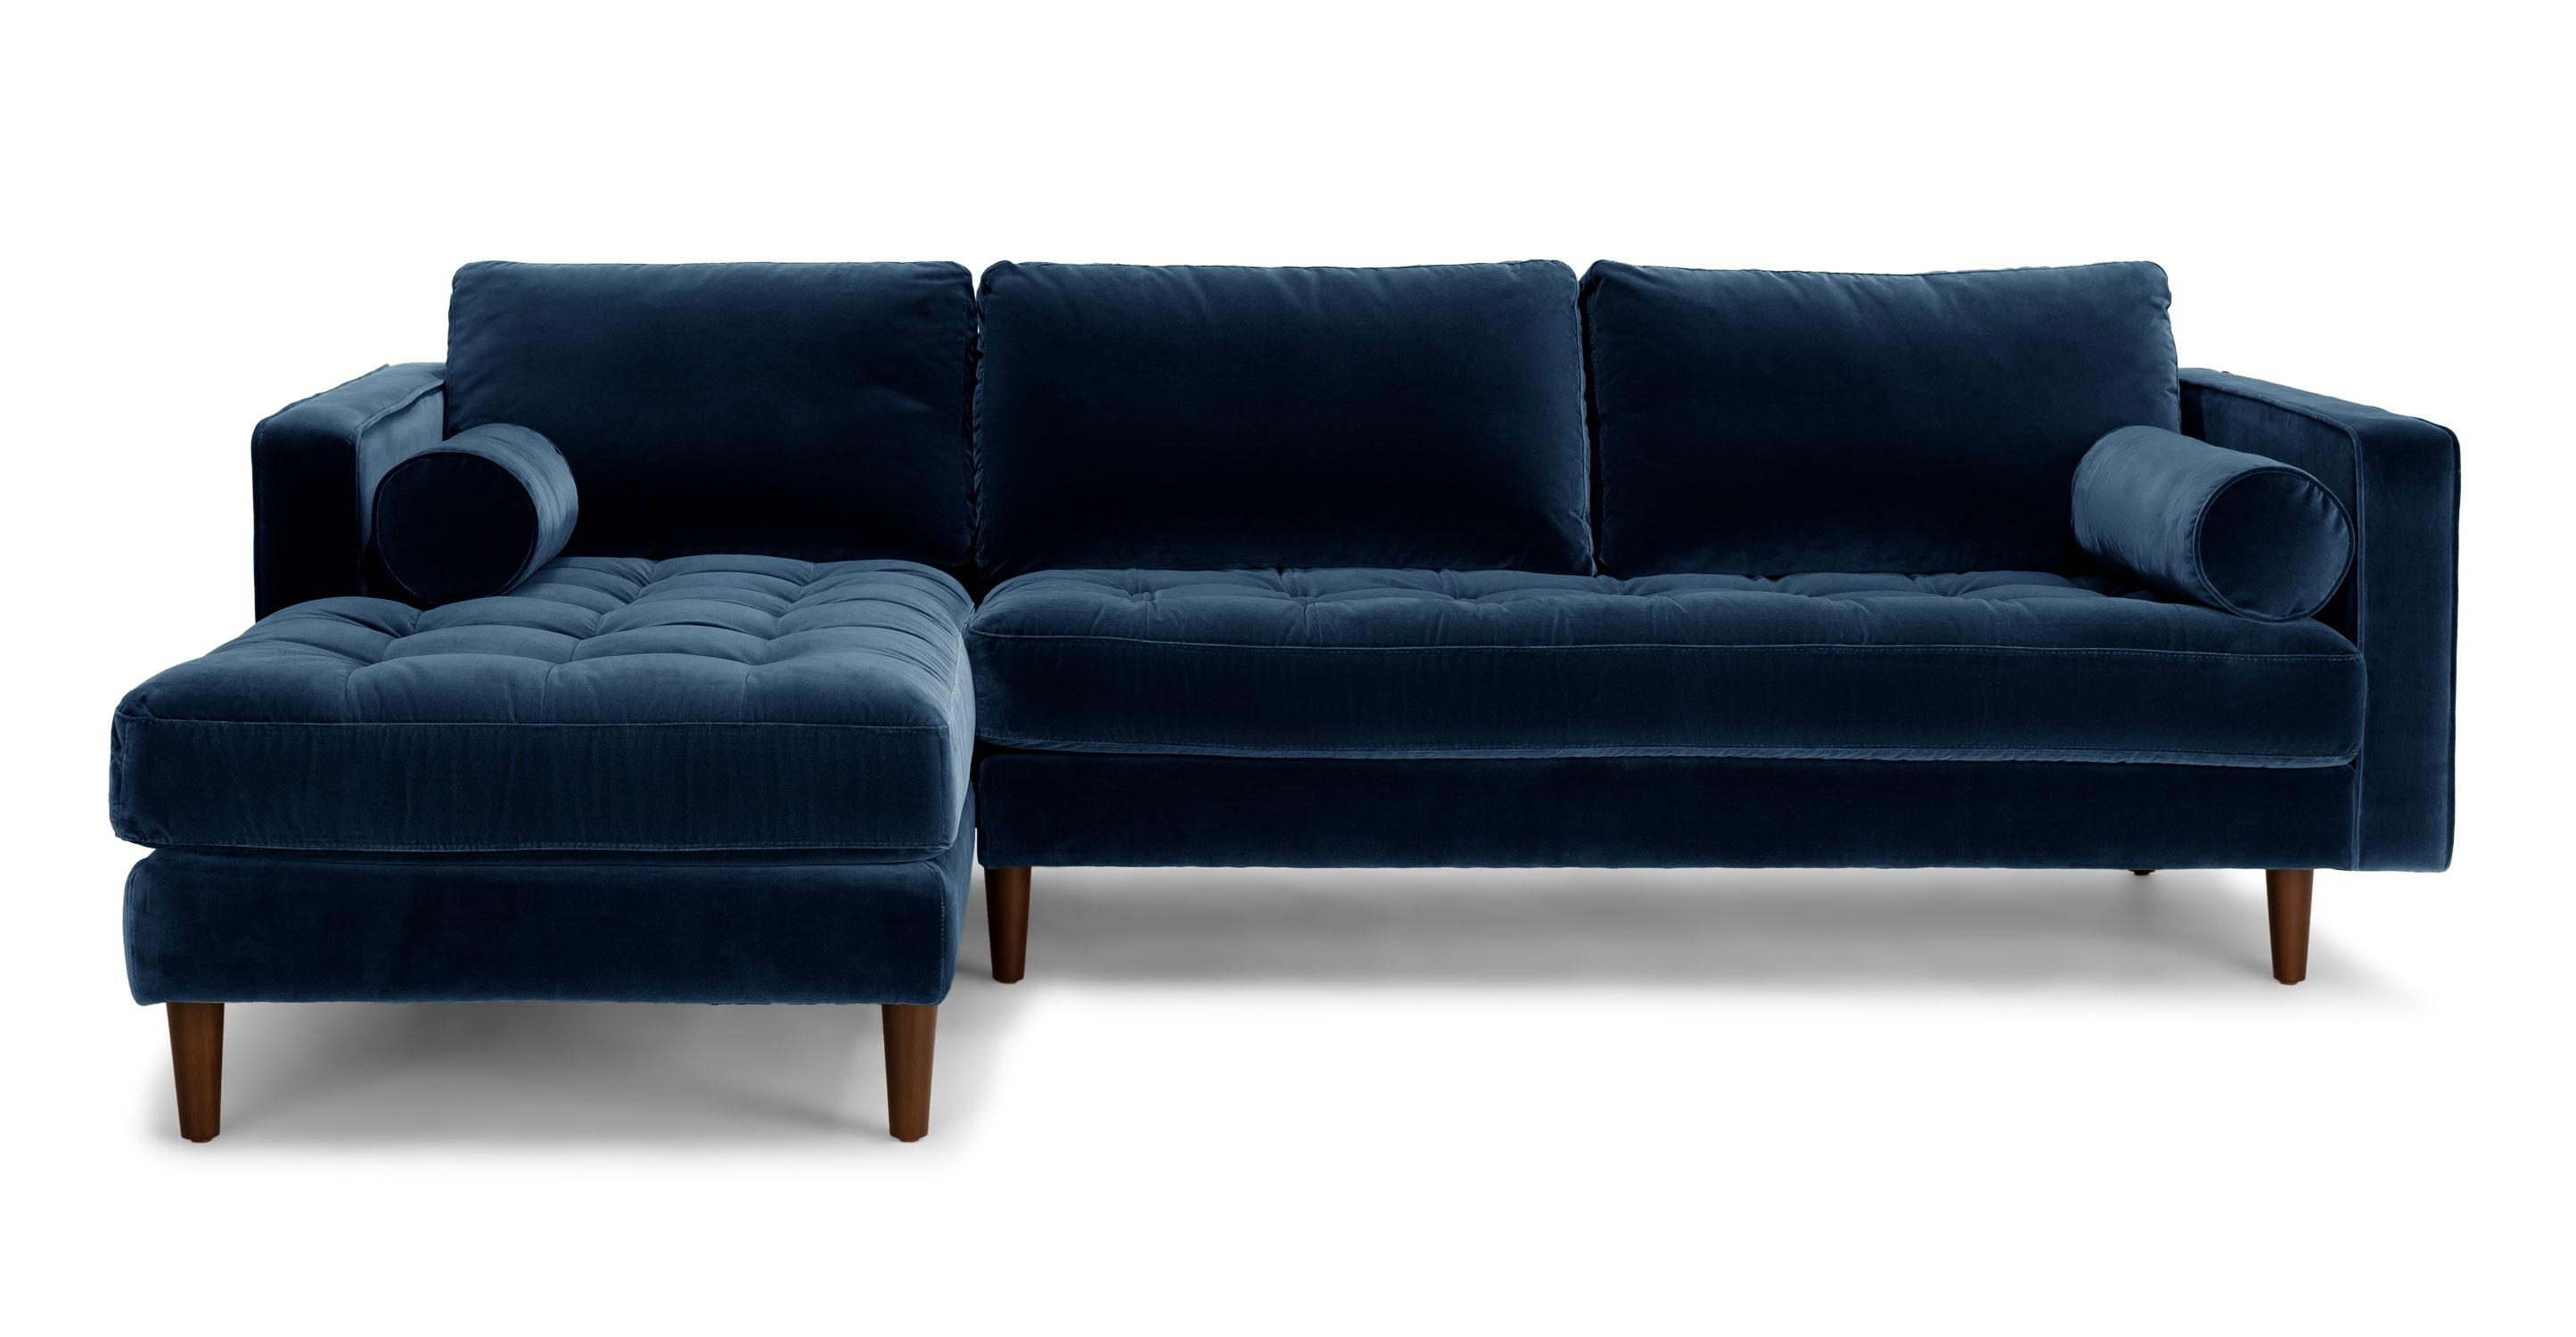 Blue Velvet Sectional Sofa | Tehranmix Decoration With Velvet Sofas Sectionals (Image 4 of 20)